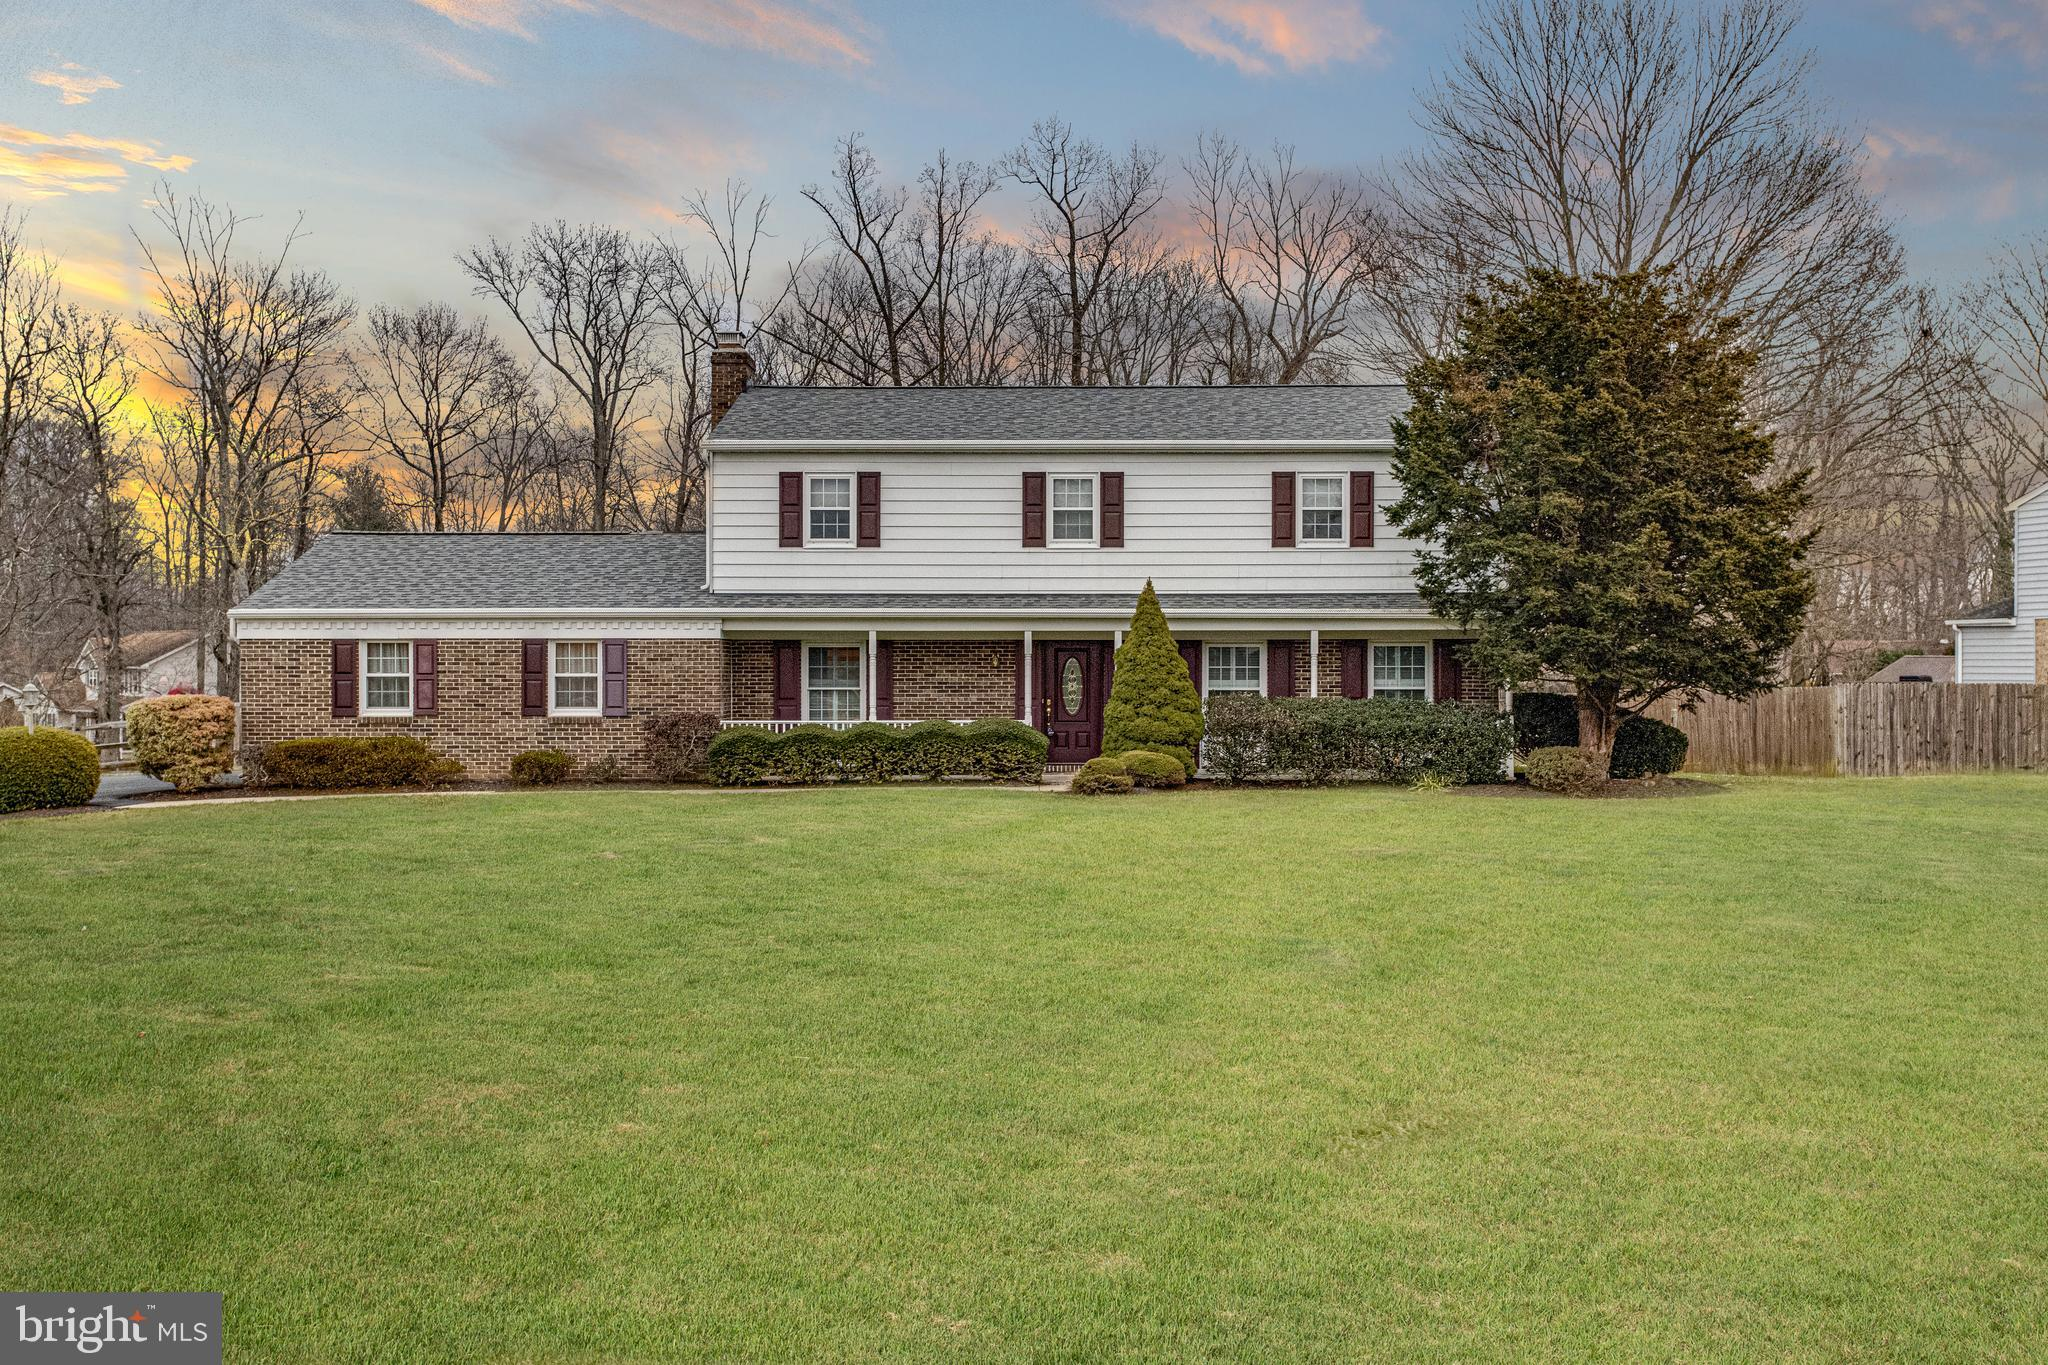 530 Stratford Rd, Fallston, MD, 21047